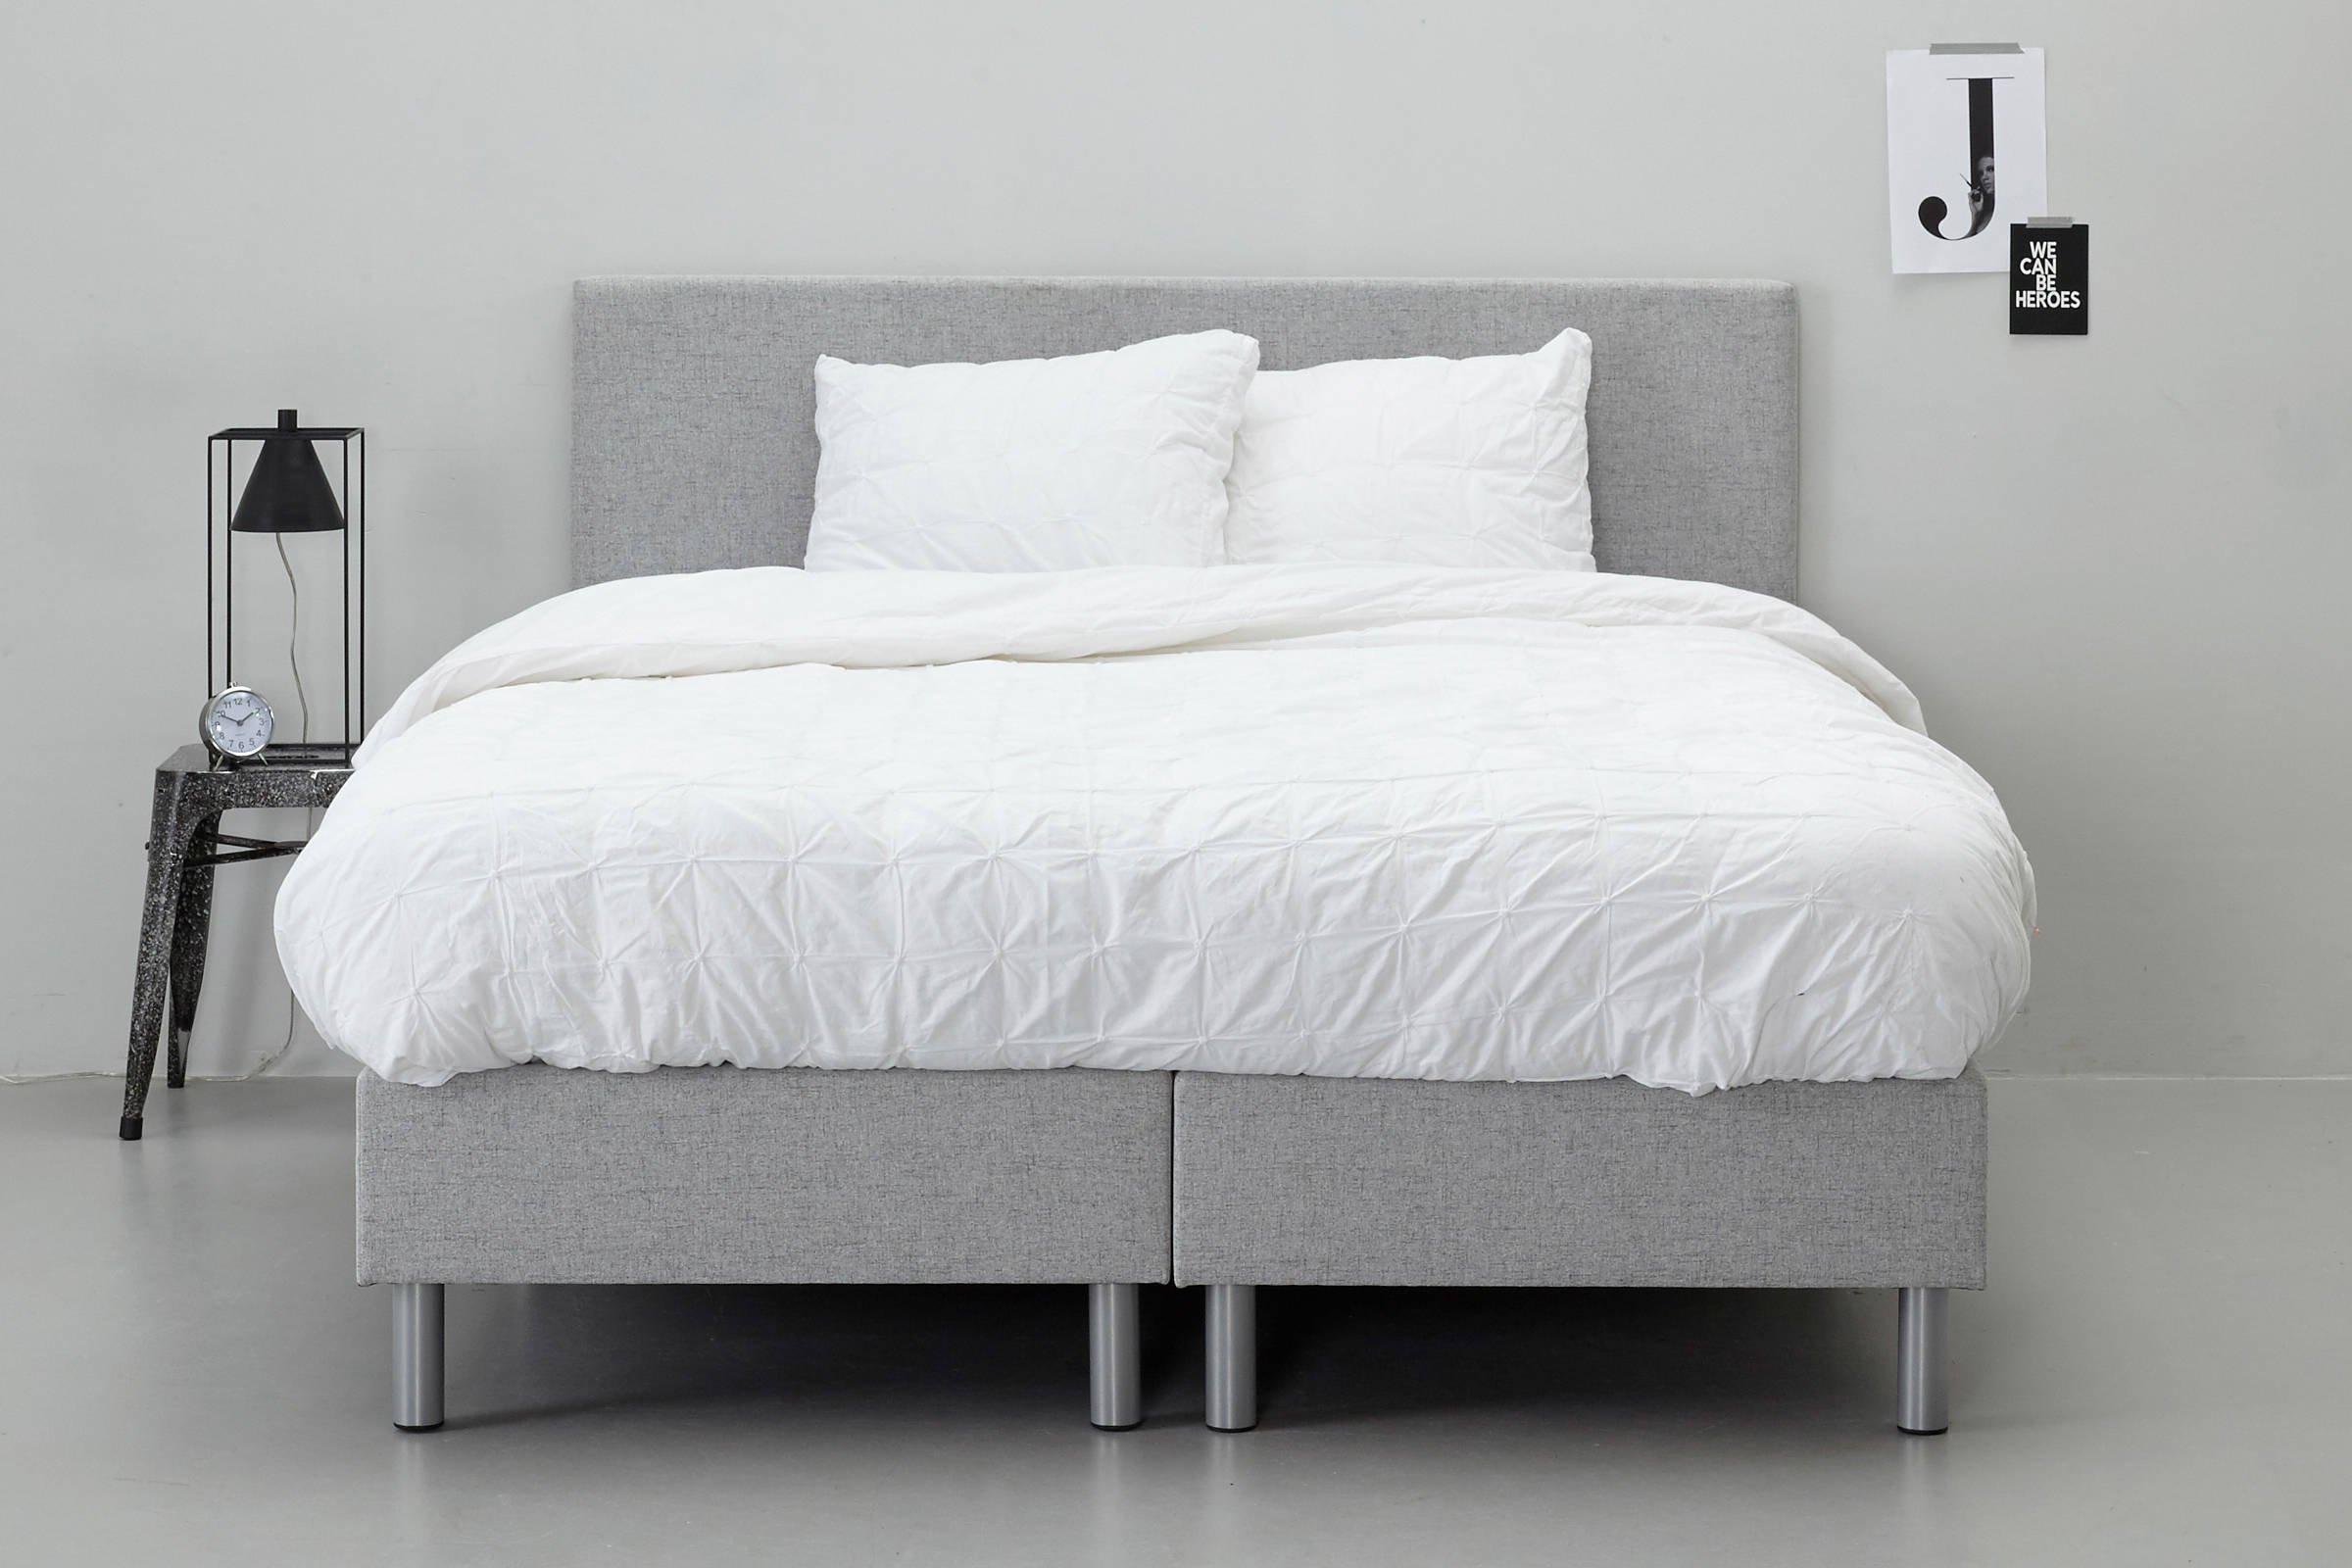 whkmp's own complete boxspring Zurich